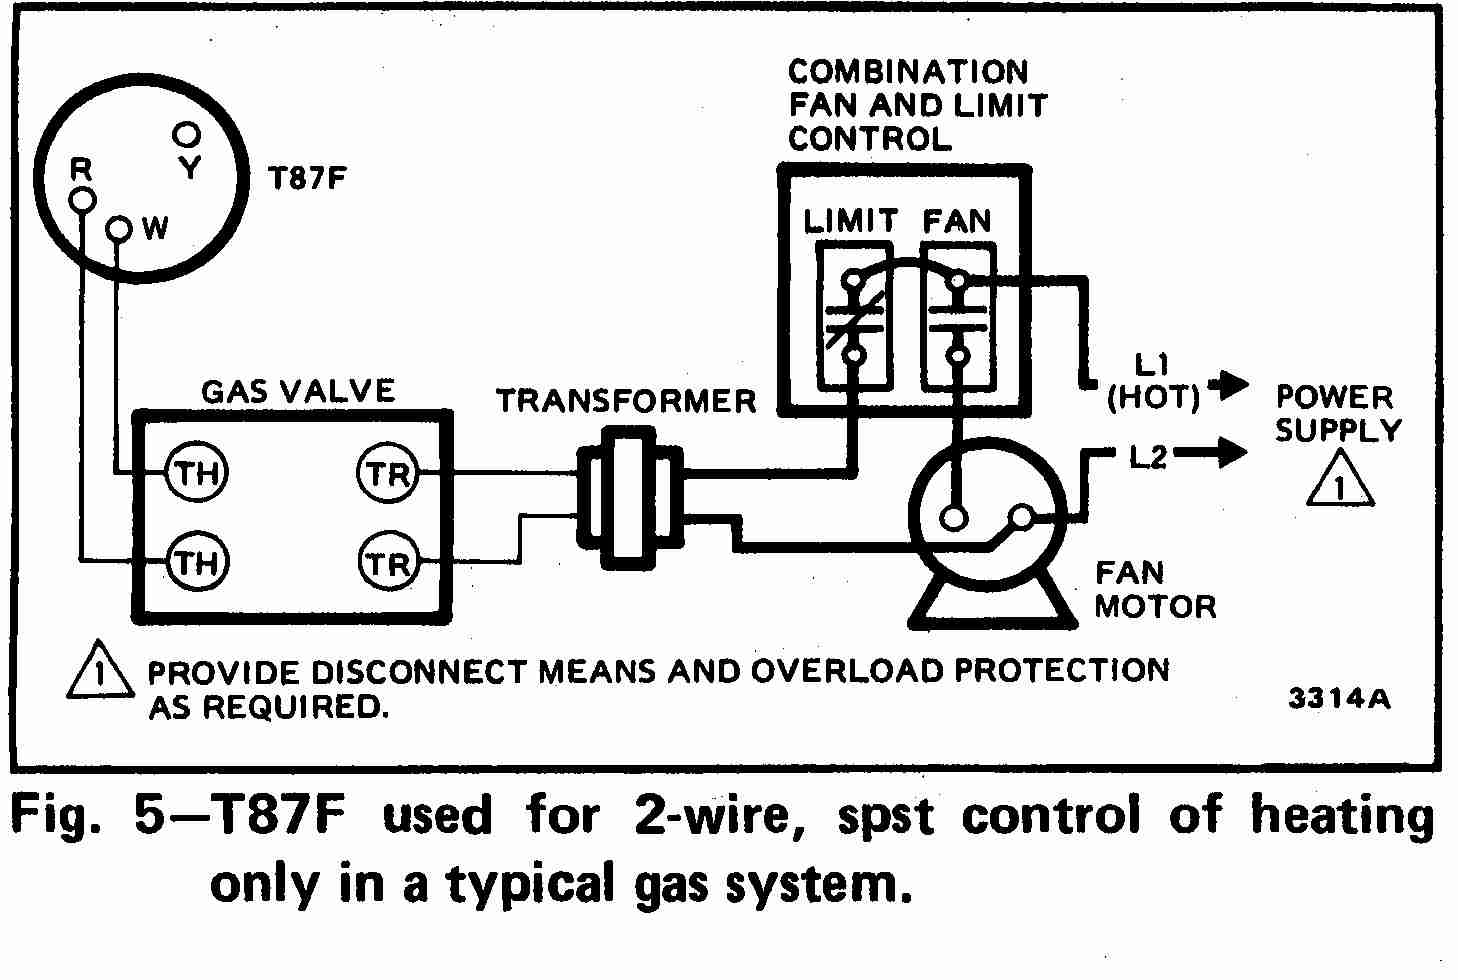 2 wire wiring diagram guide to wiring connections for room thermostats honeywell t87f thermostat wiring diagram for 2 wire spst